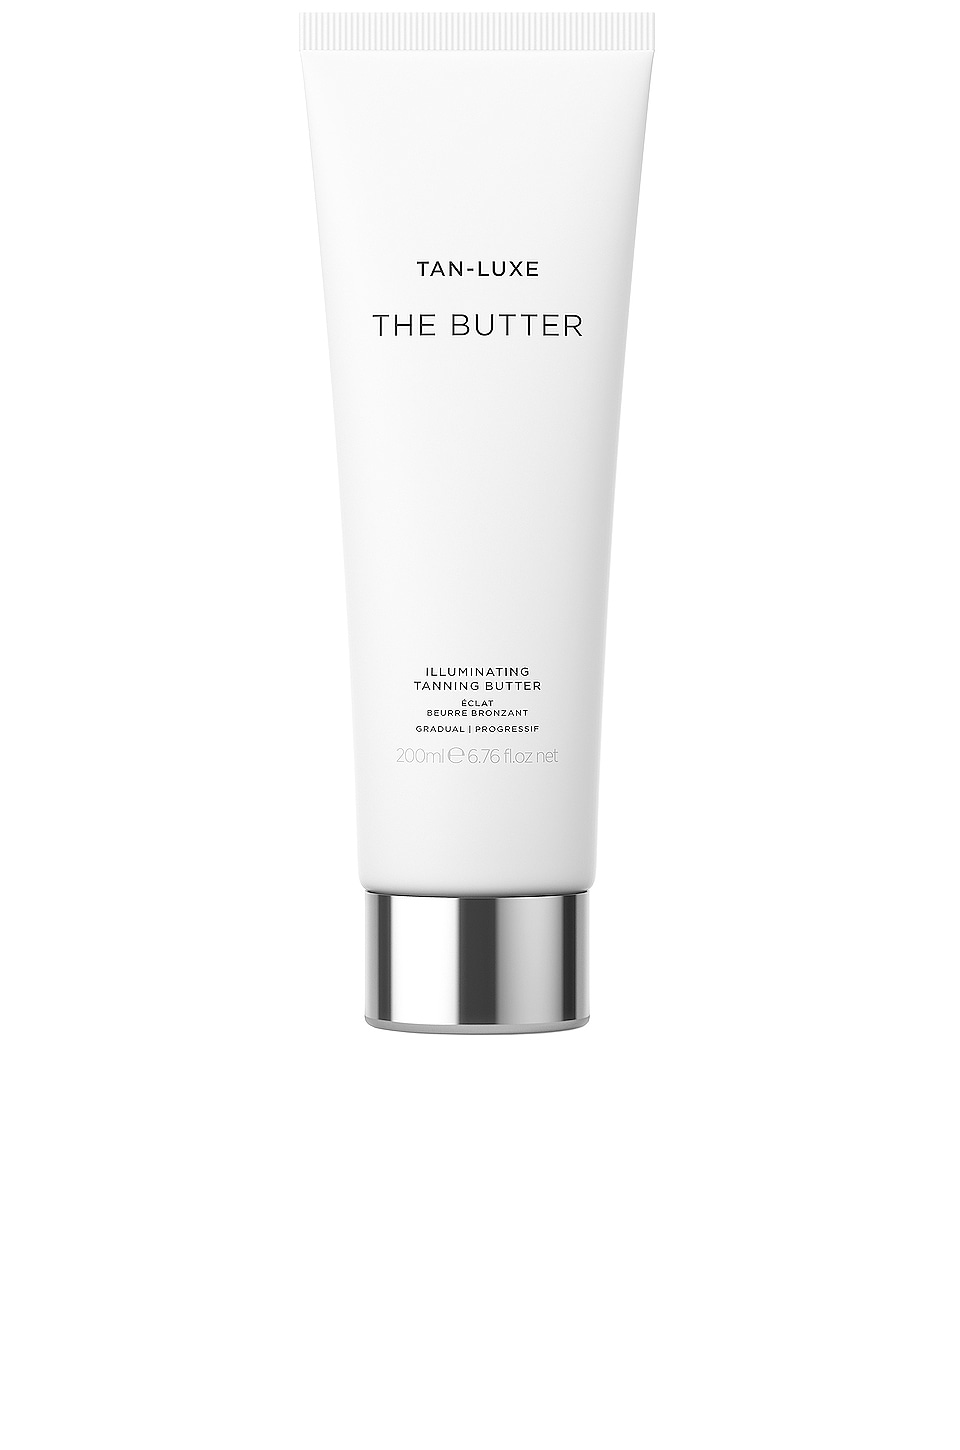 Tan Luxe The Butter Illuminating Tanning Butter